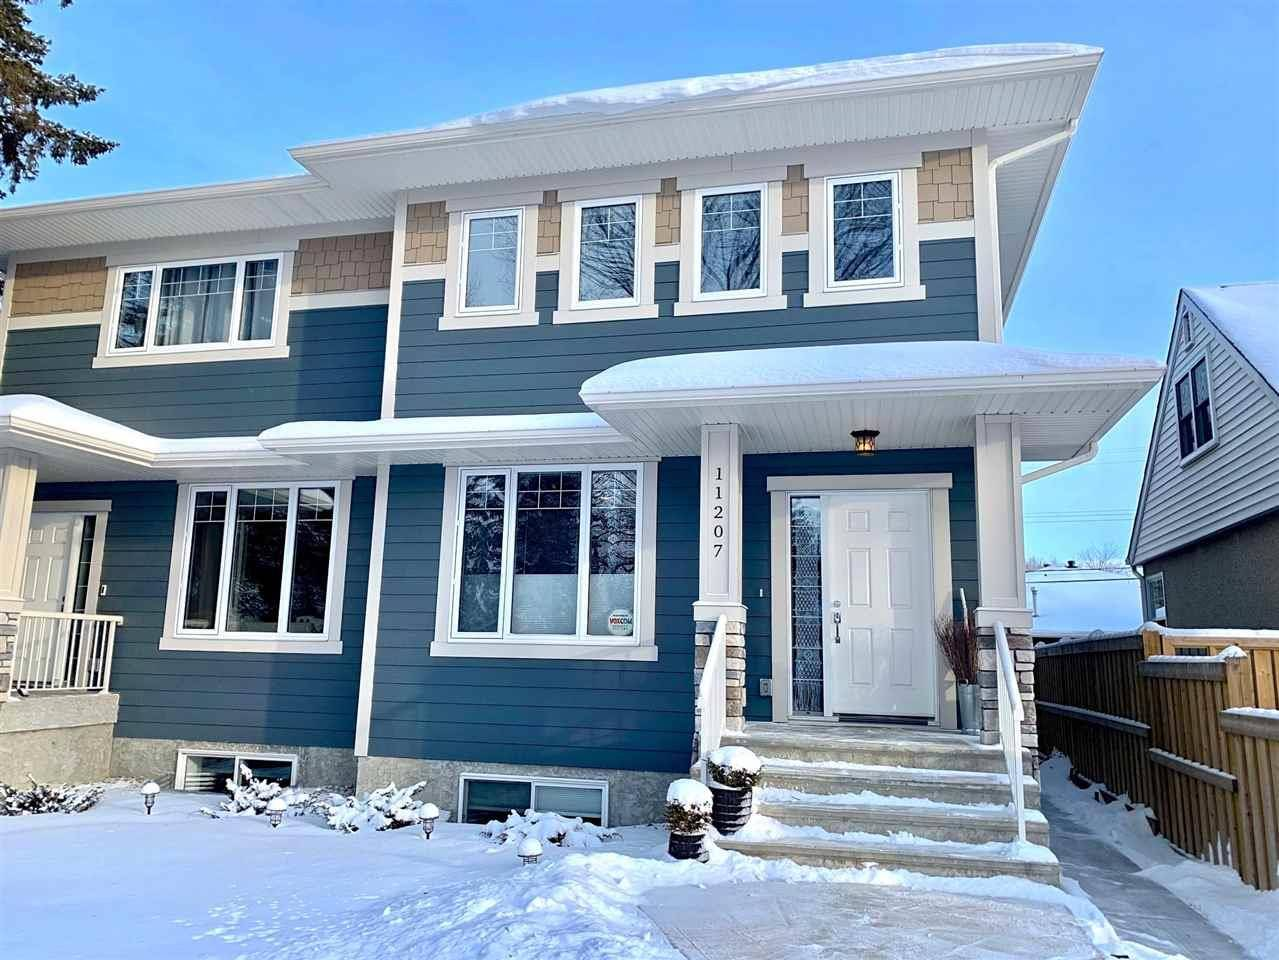 Townhouse for sale at 11207 132 St Nw Edmonton Alberta - MLS: E4175763